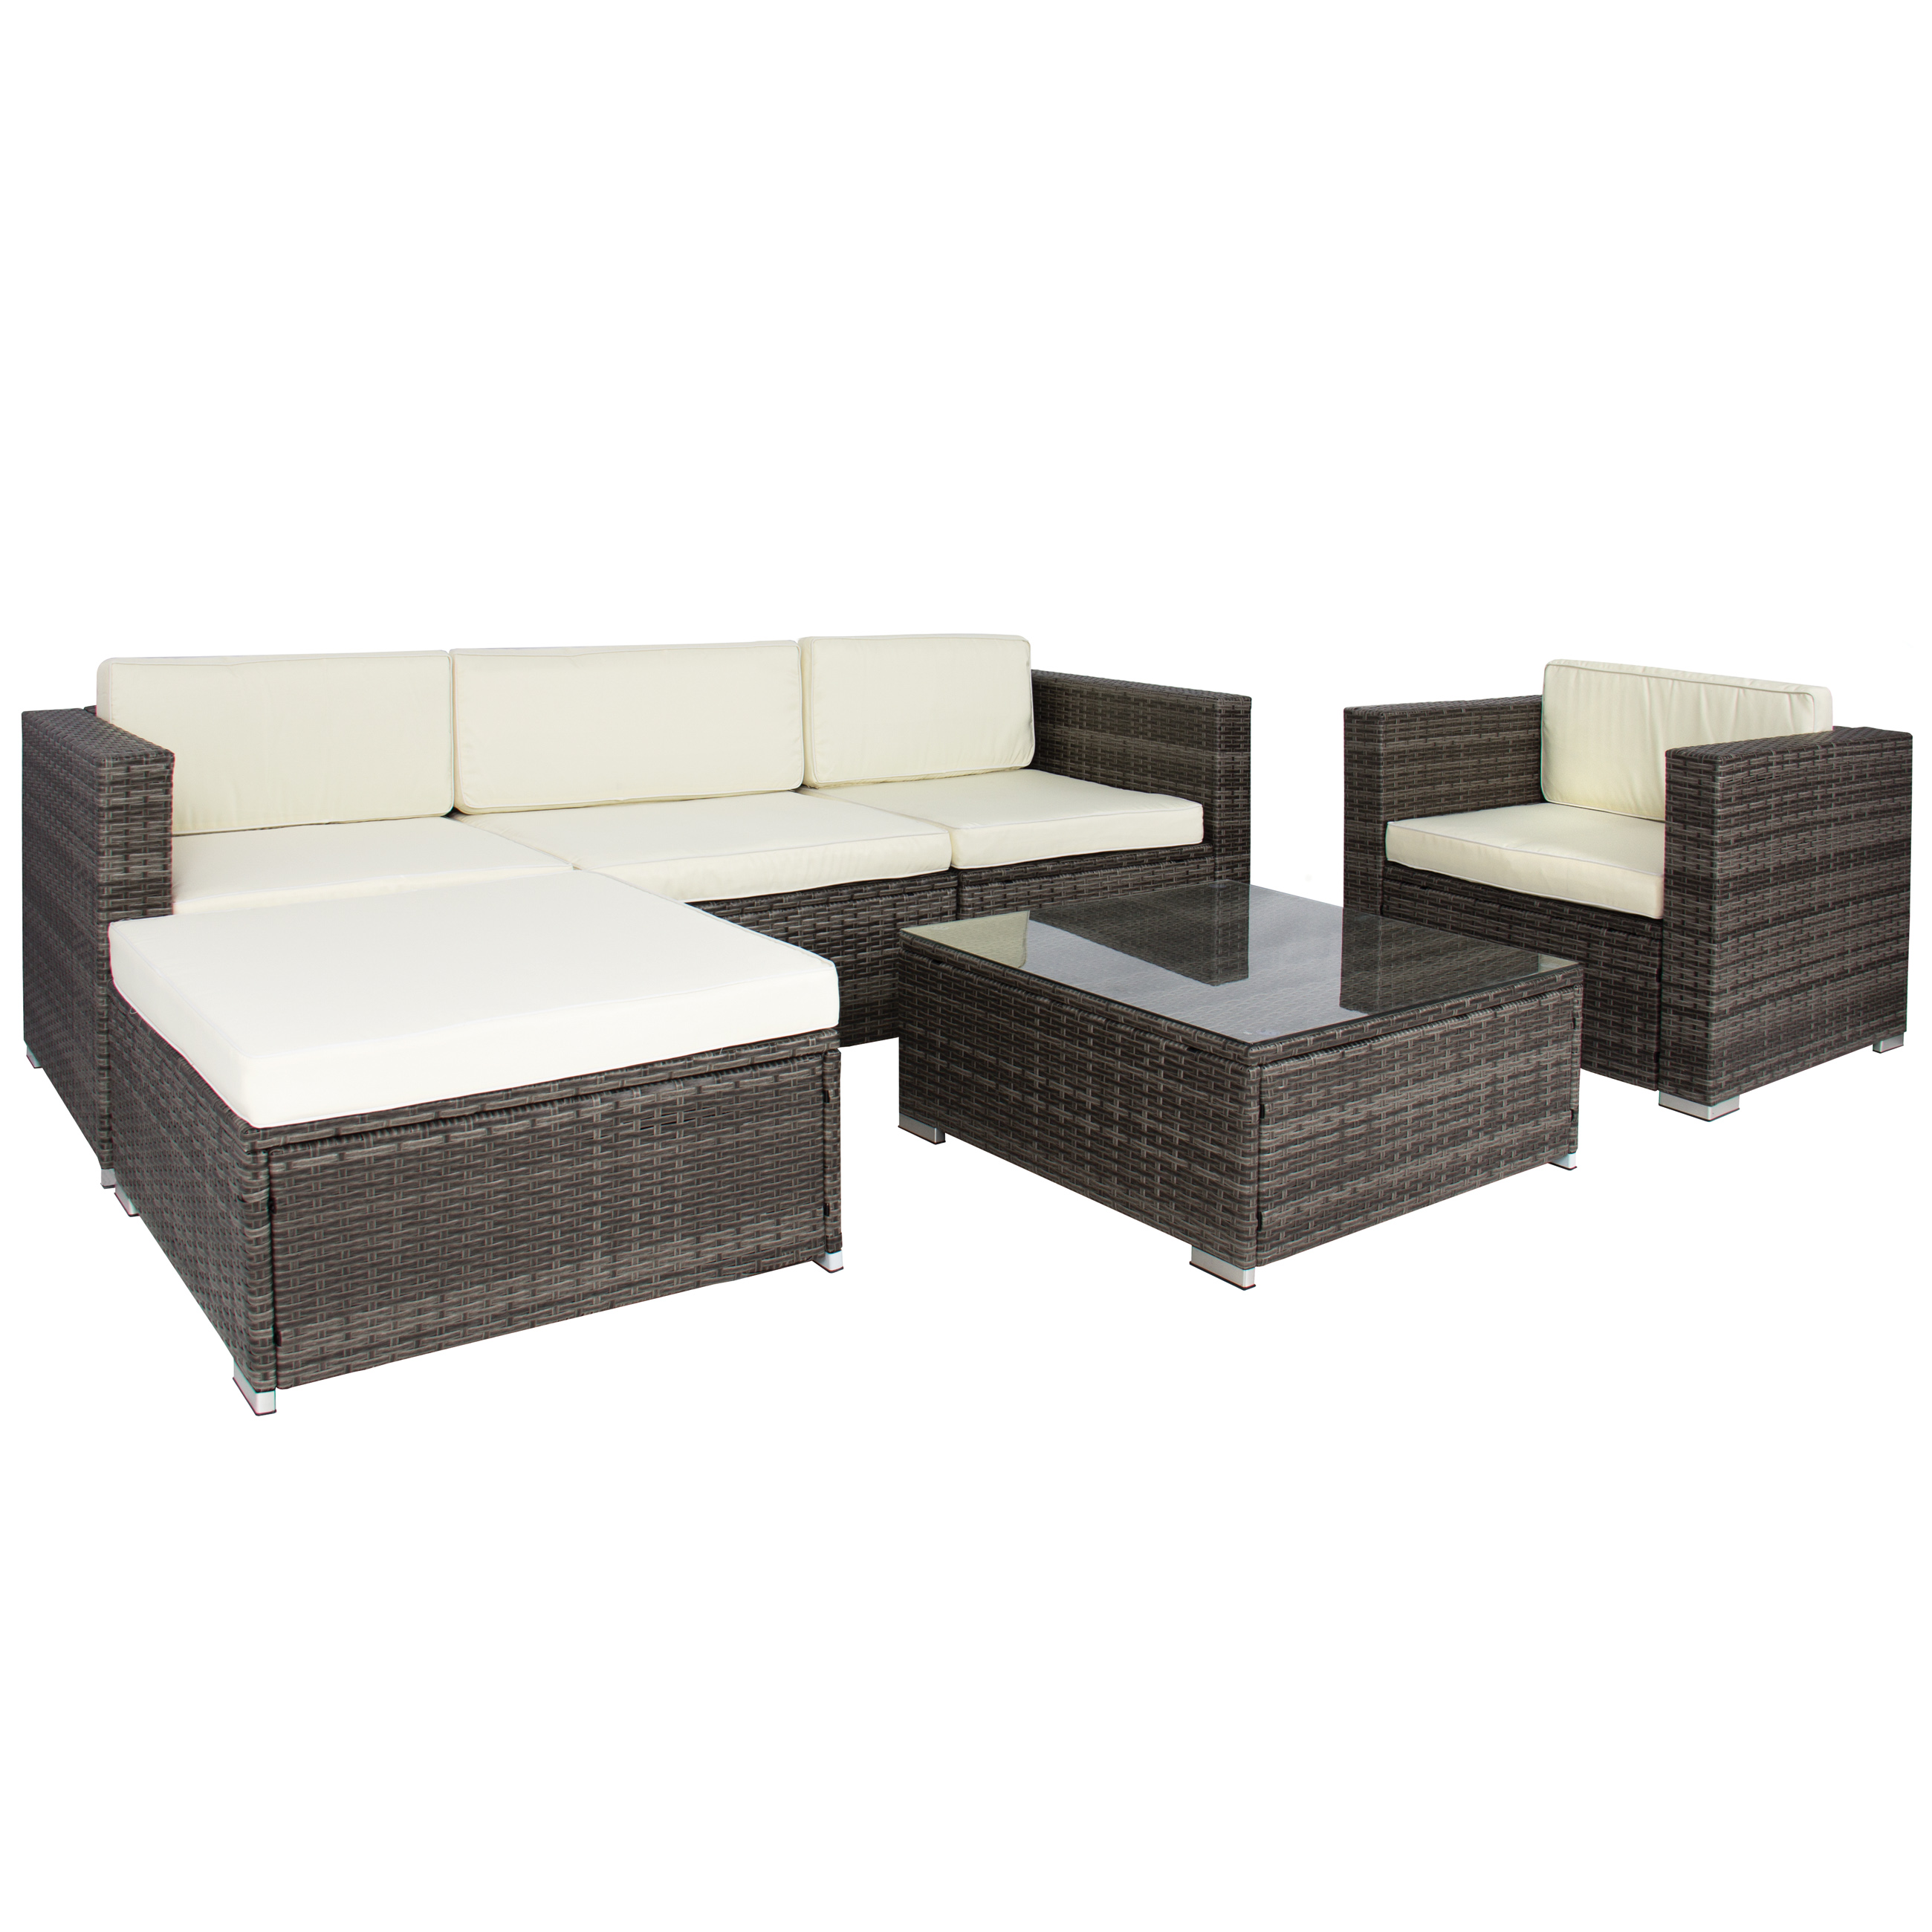 6PC Outdoor Patio Garden Wicker Furniture Rattan Sofa Set Sectional Grey    Walmart.com